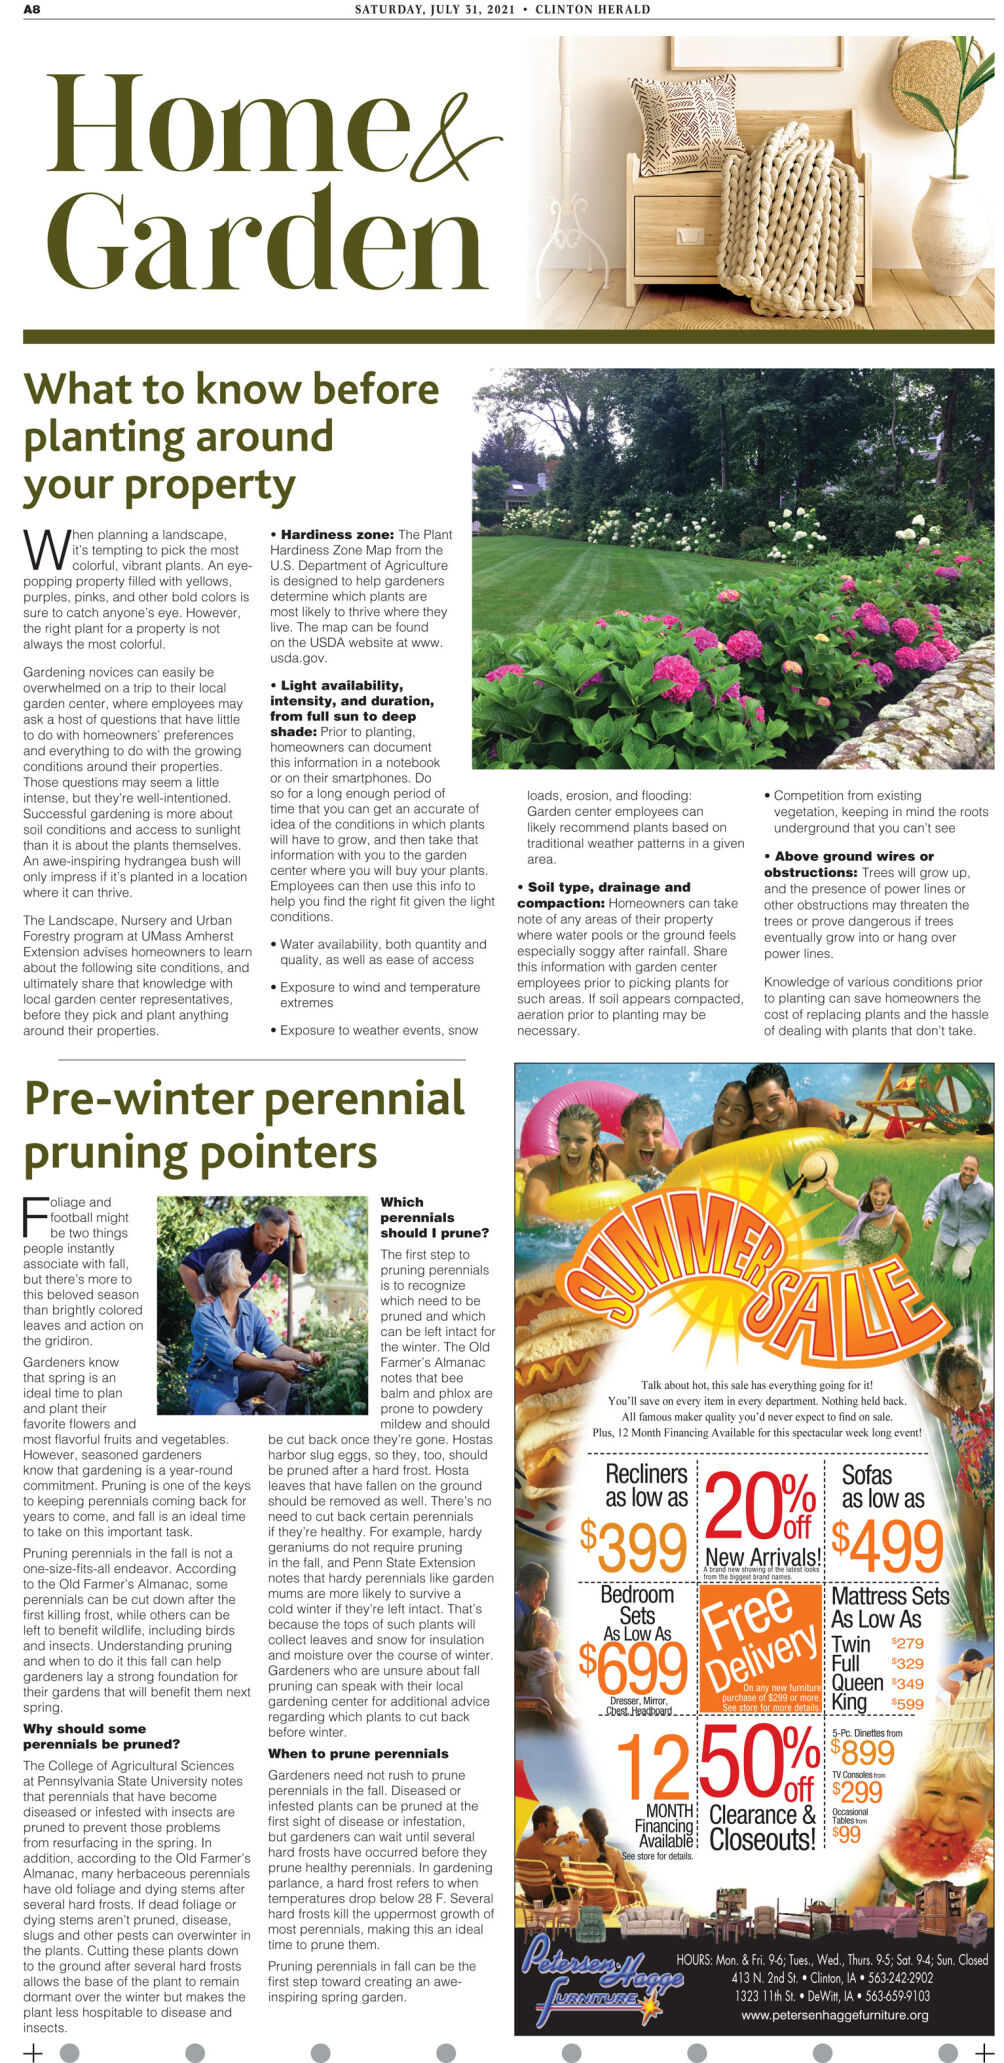 Home and Garden page 1